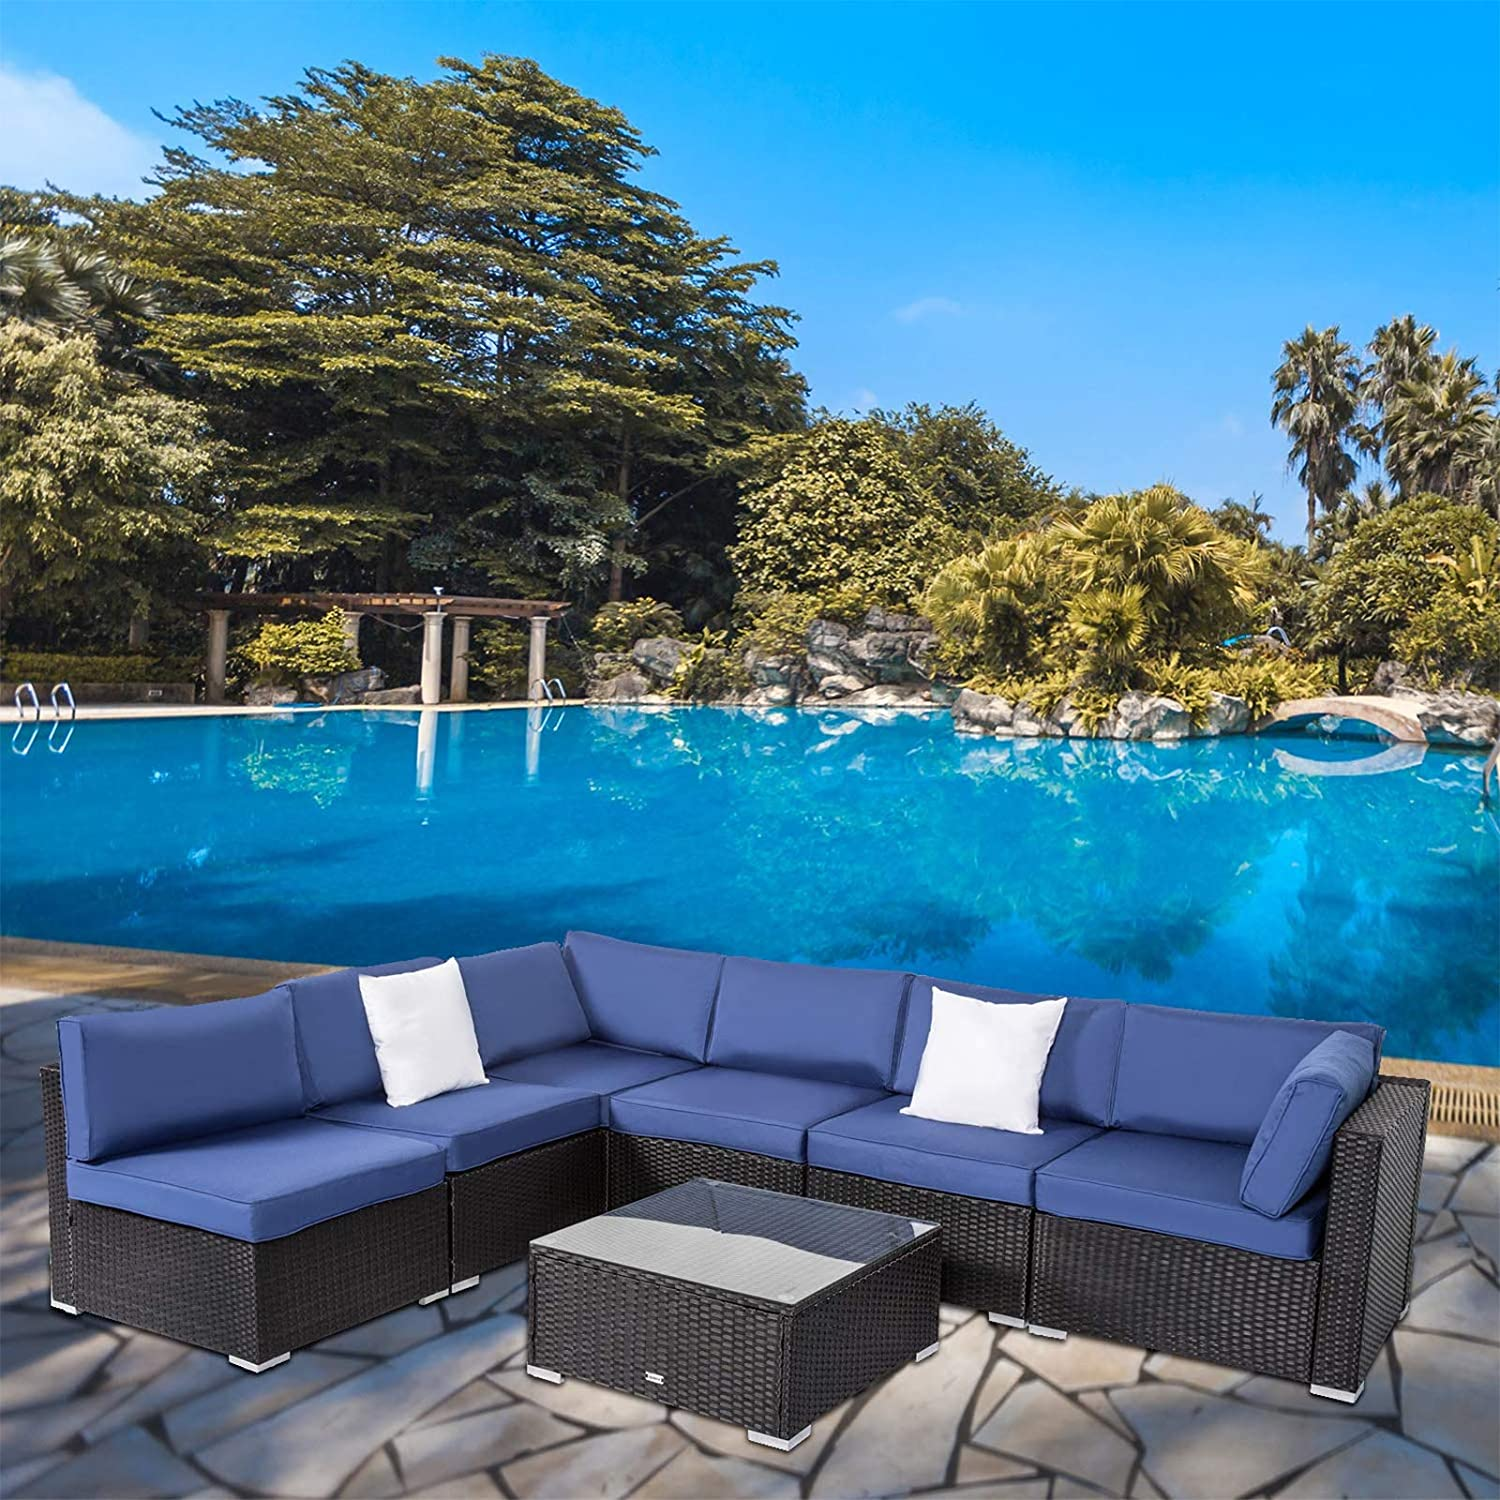 Kinsunny Outdoor Furniture Sectional Wicker Sofa Set 20 PCs Patio Rattan  Clearance with Washable Cushions and Coffee Table, Backyard, Pool